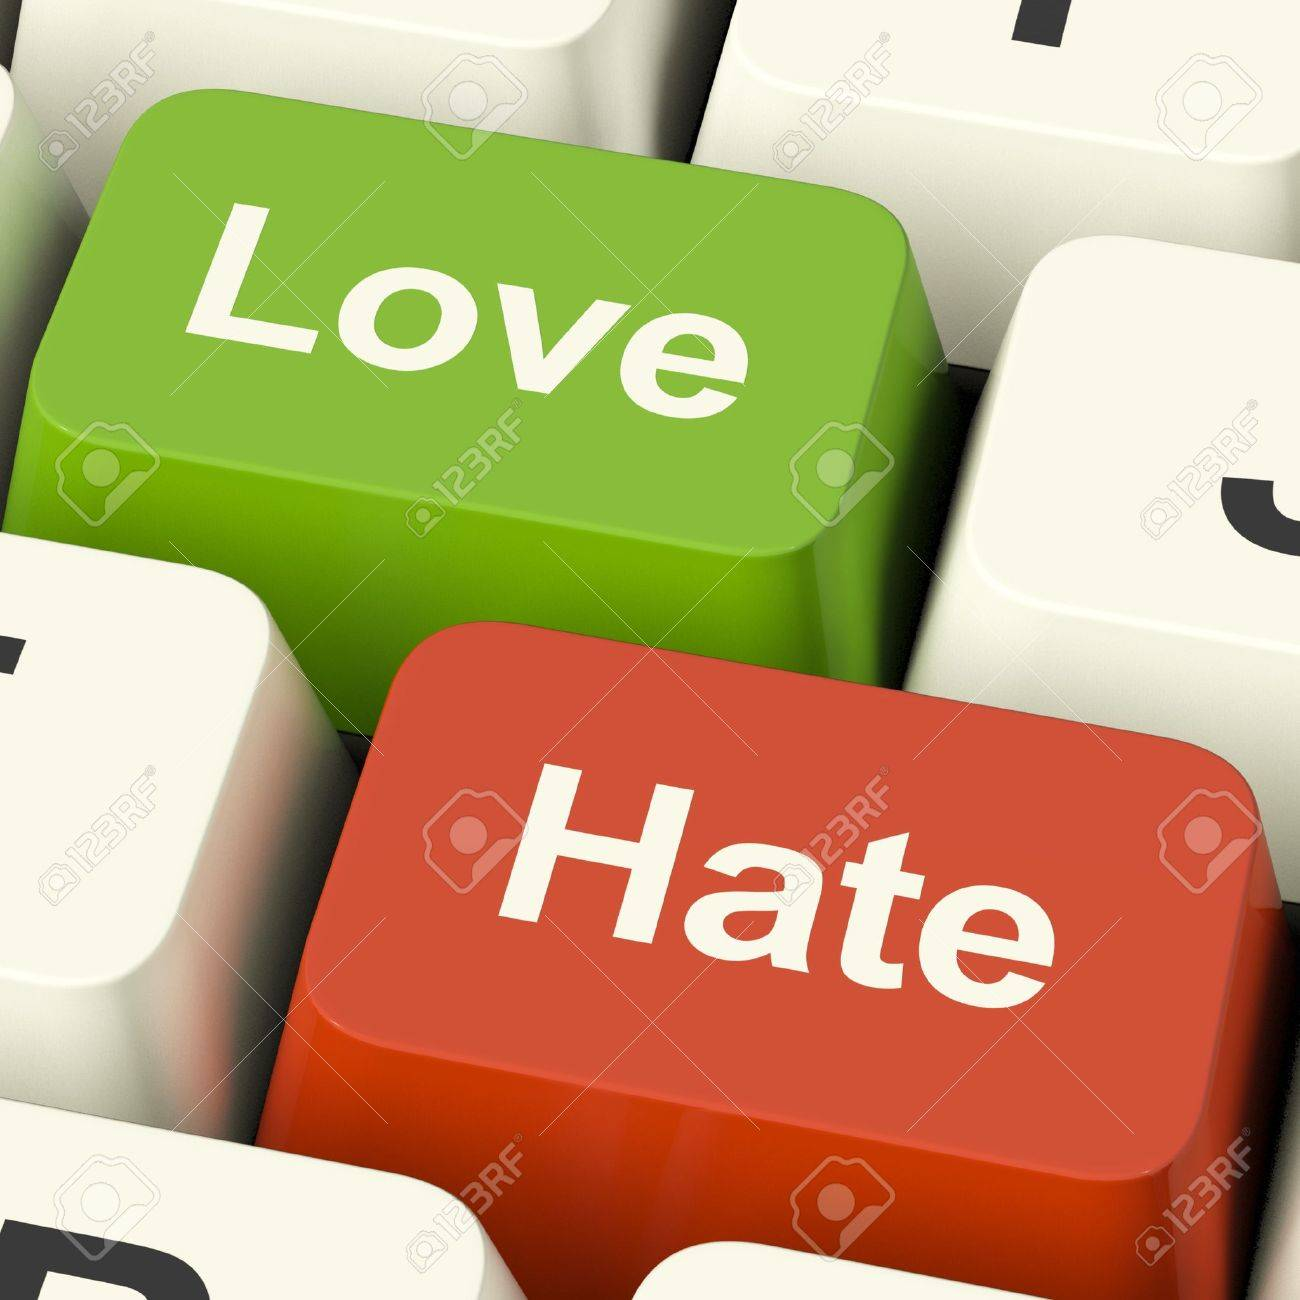 anger management essay research paper on anger management buy it  love hate computer keys shows emotion anger and conflict stock love hate computer keys shows emotion